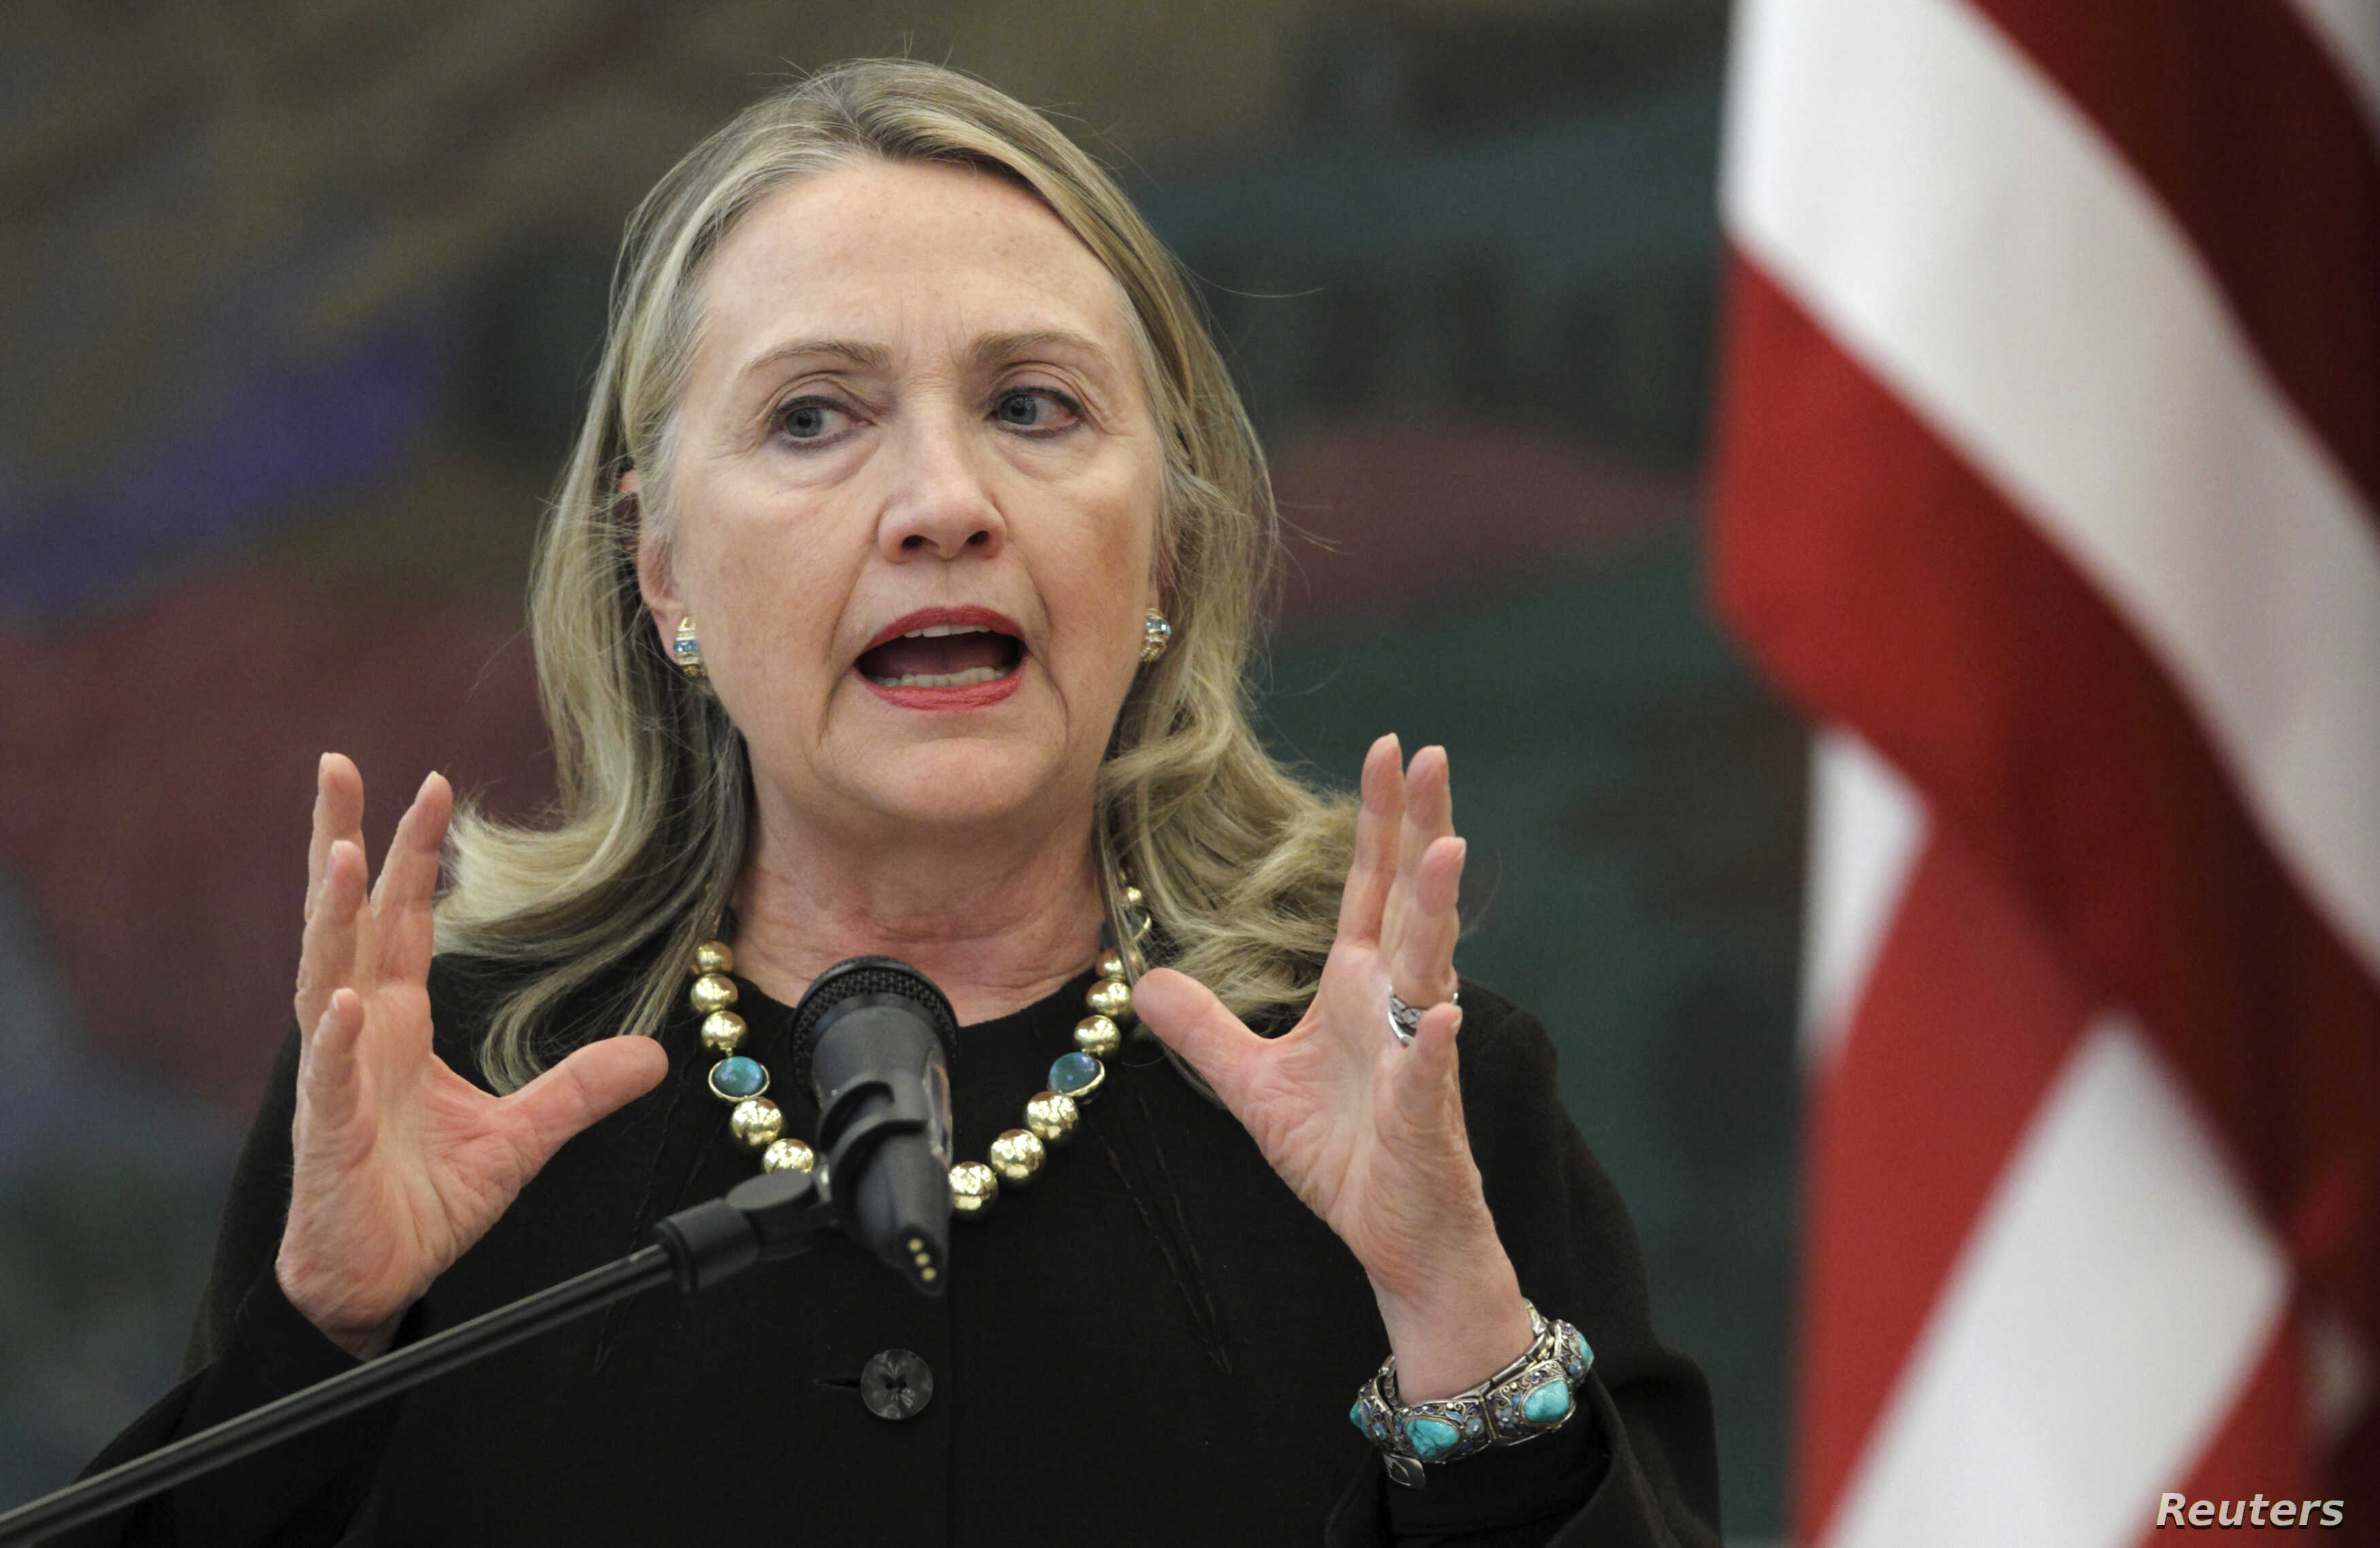 U.S. Secretary of State Hillary Clinton speaks during a news conference with Croatian President Ivo Josipovic in Zagreb, October 31, 2012.